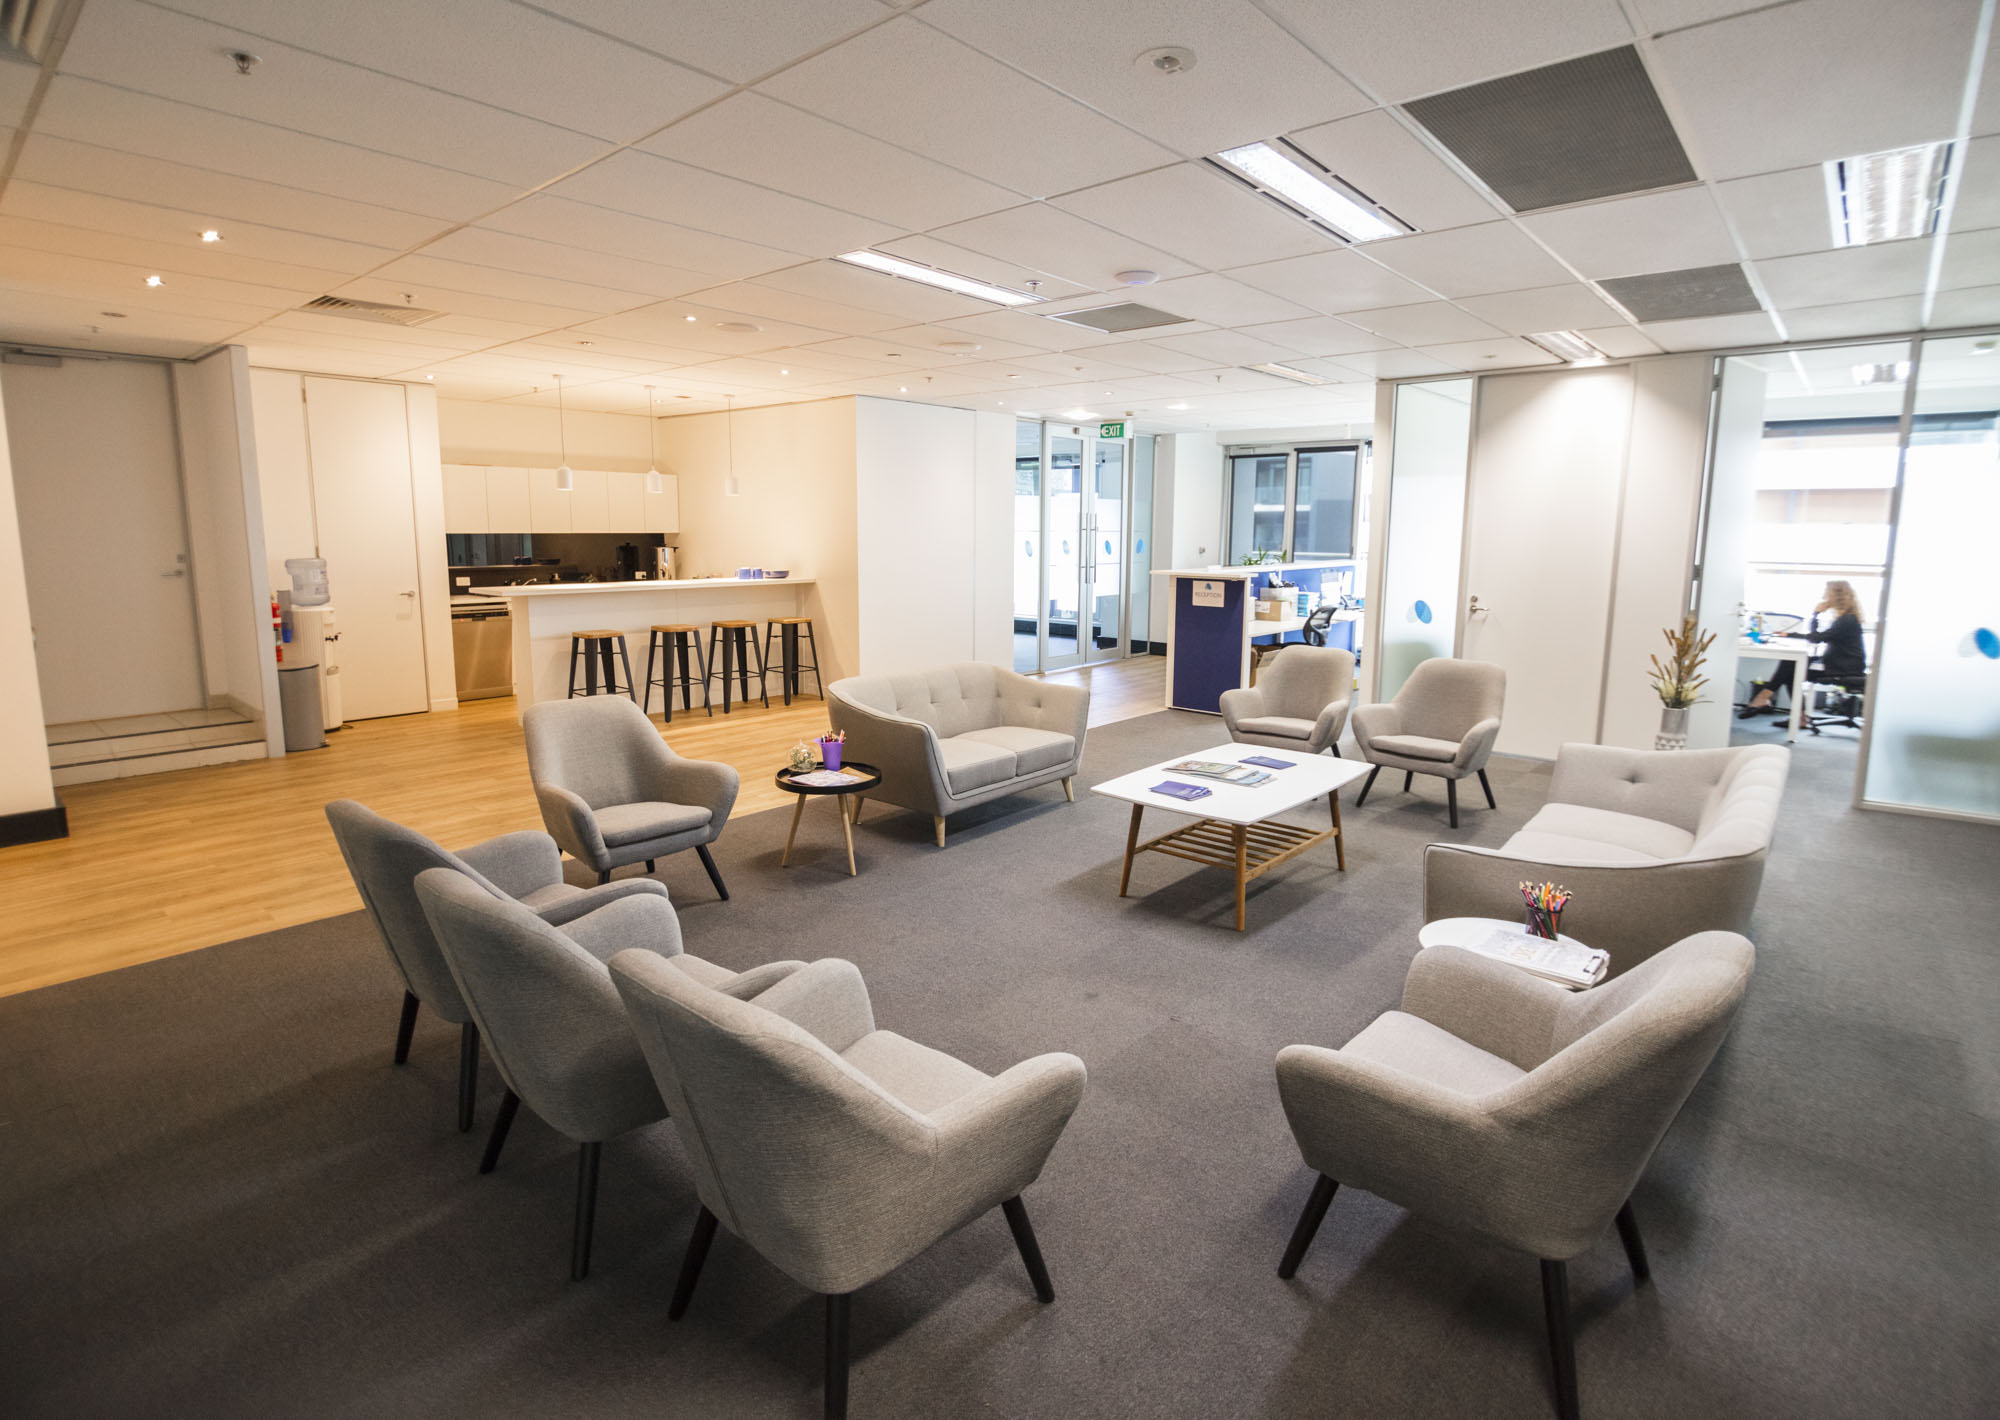 Pain Specialists Australia - Consulting Rooms Lounge 1.jpg